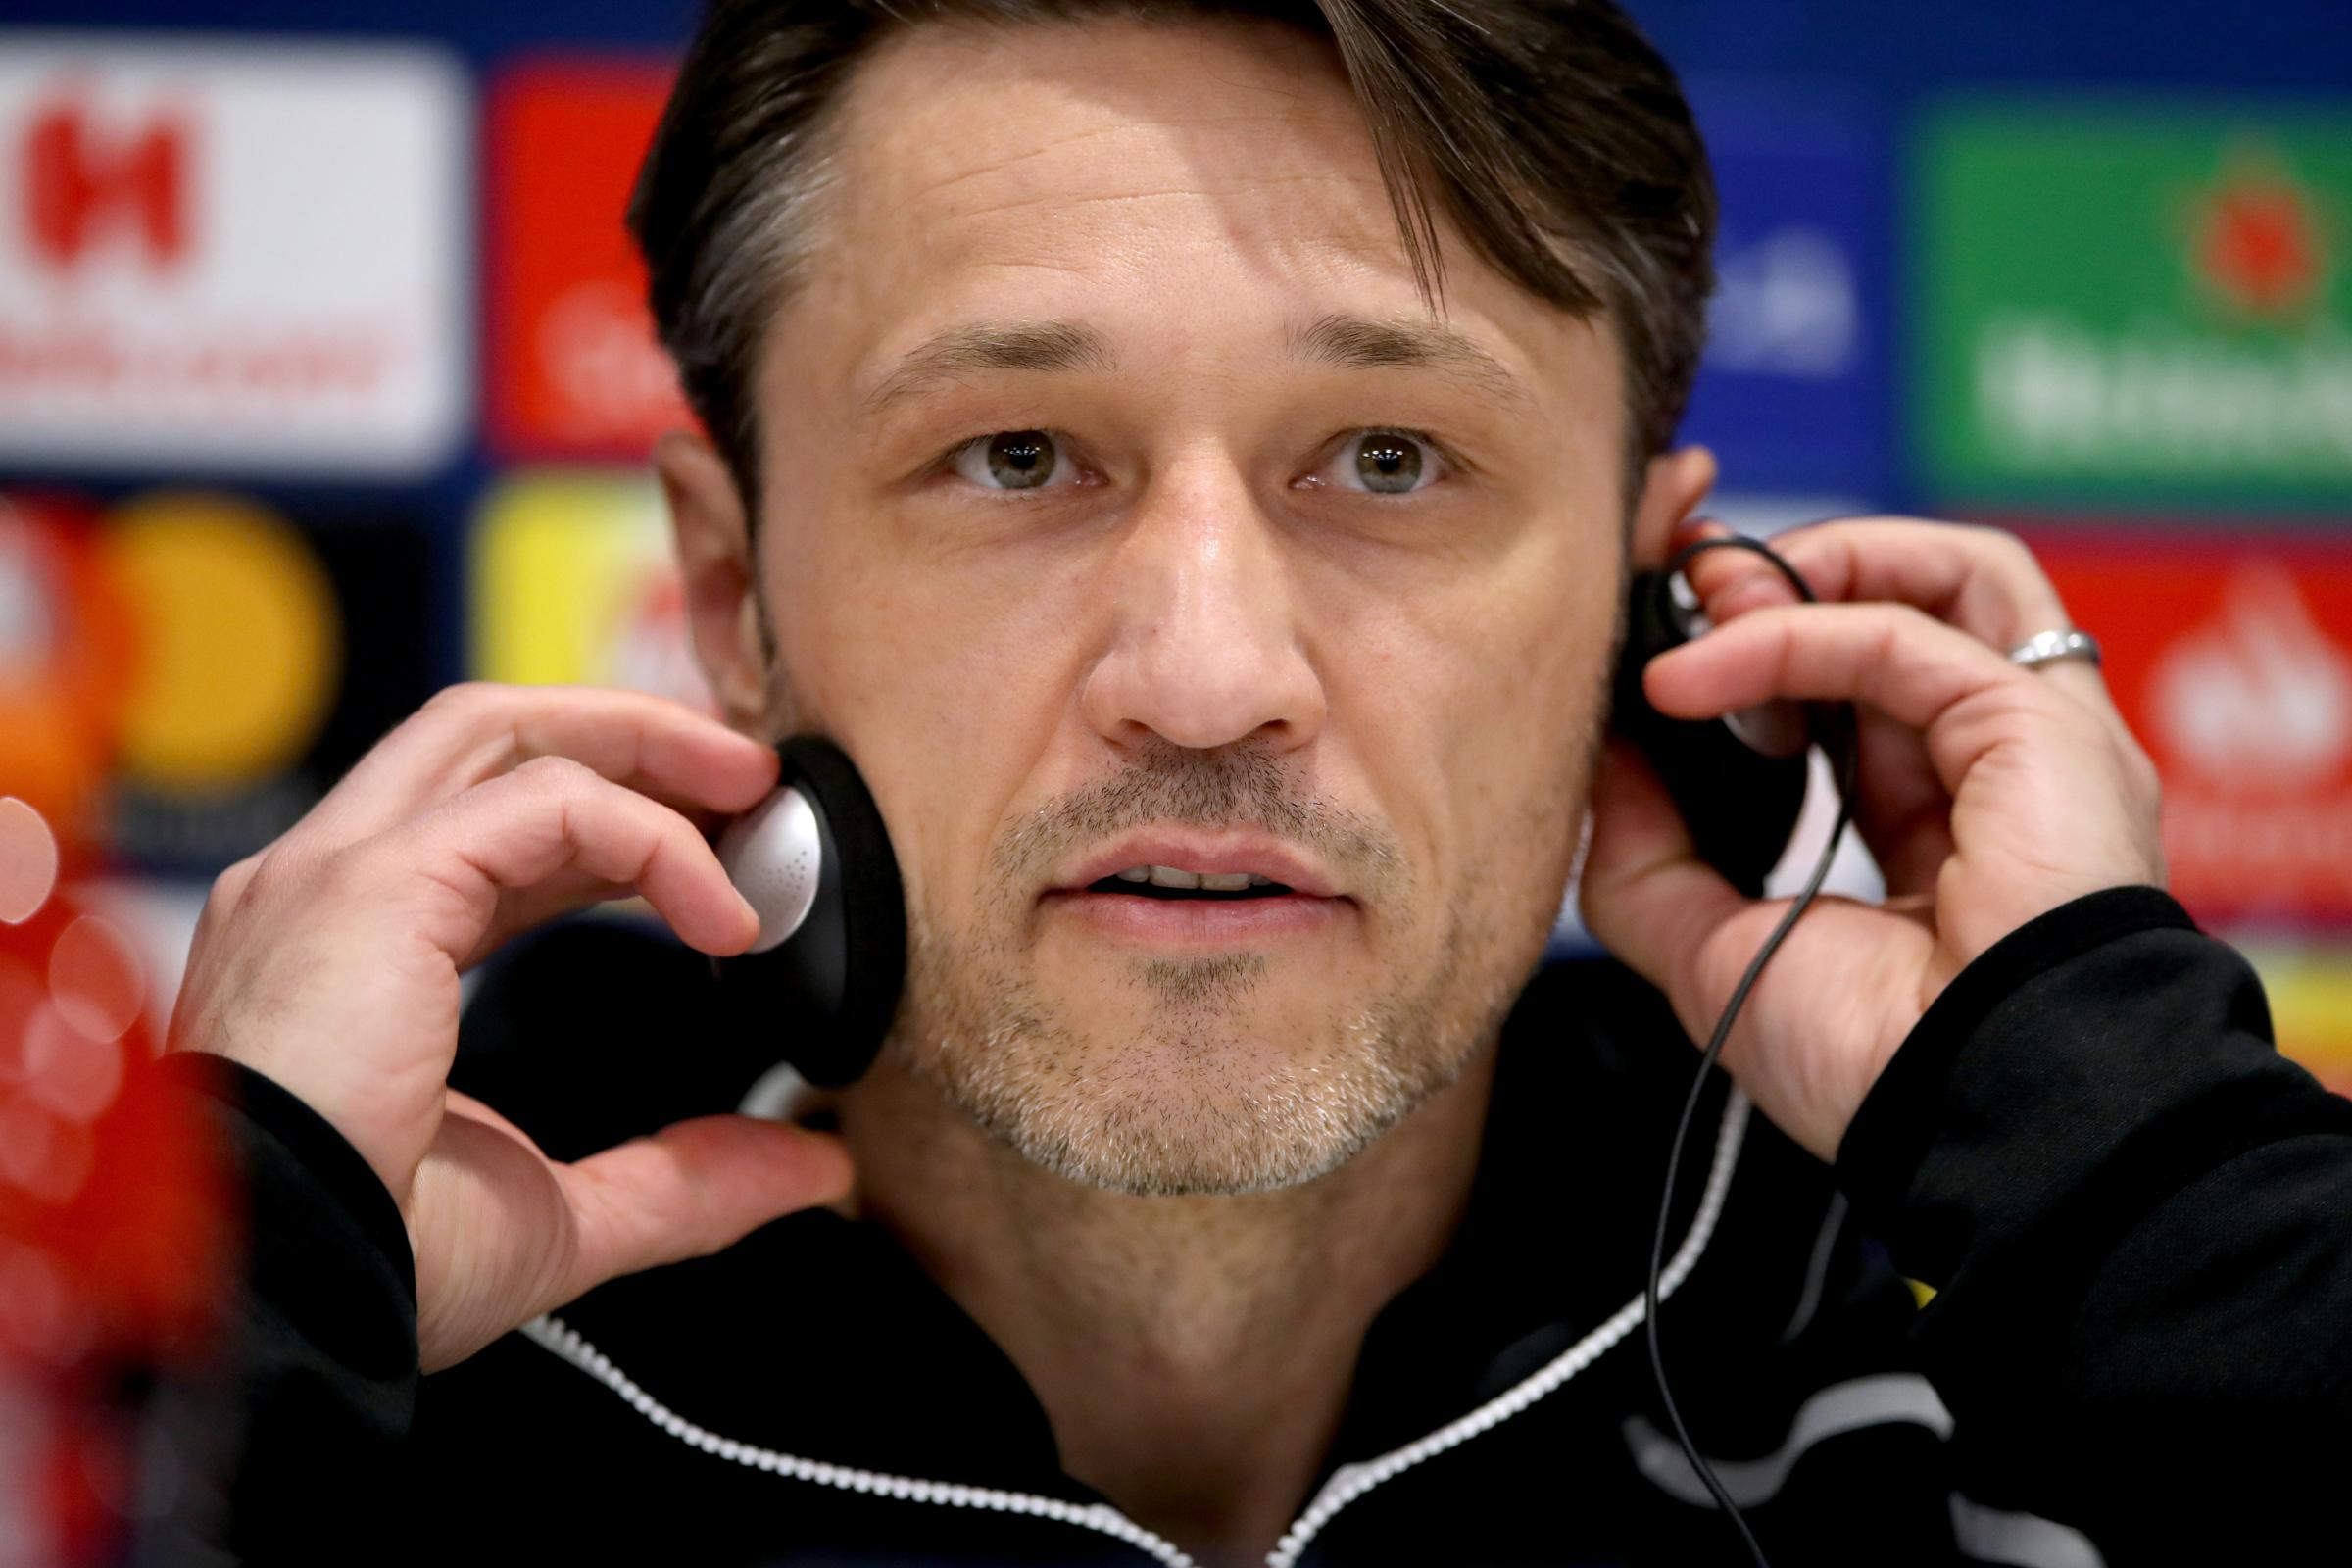 Bayern Munich manager Niko Kovac's side face Hertha Berlin in a confident mood